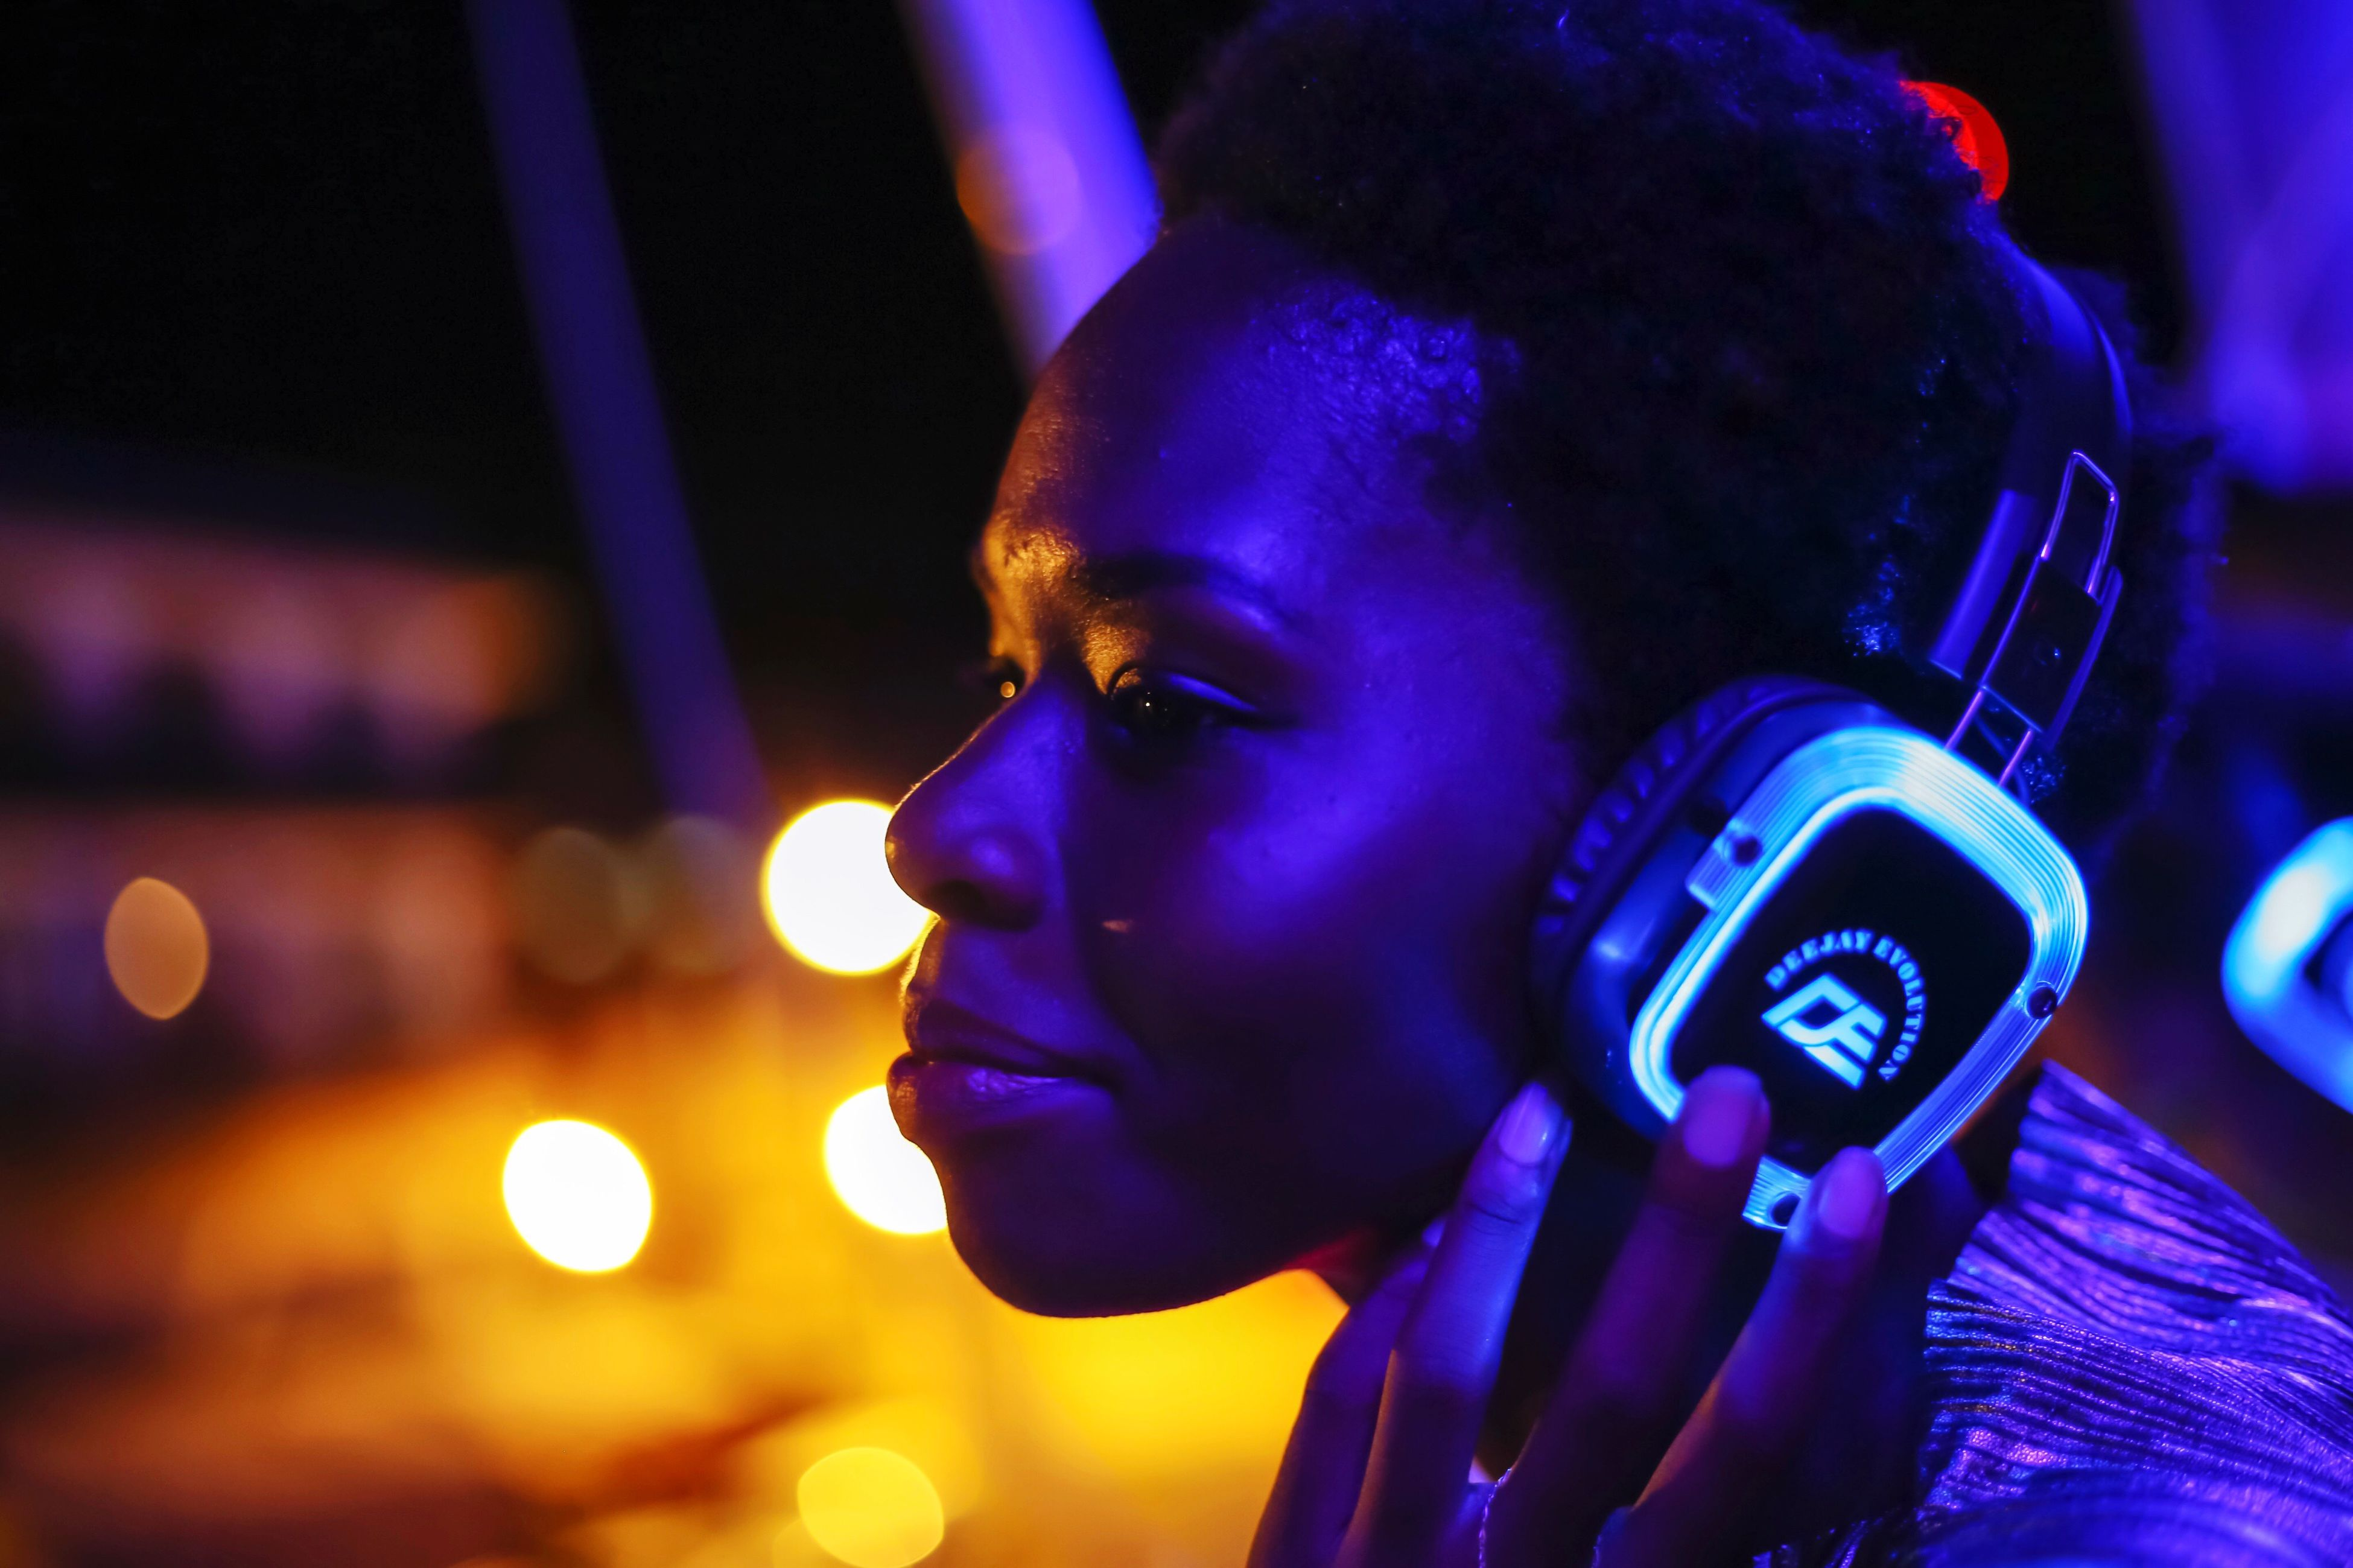 headshot, illuminated, focus on foreground, one person, lifestyles, close-up, neon, real people, young adult, night, indoors, young women, people, adult